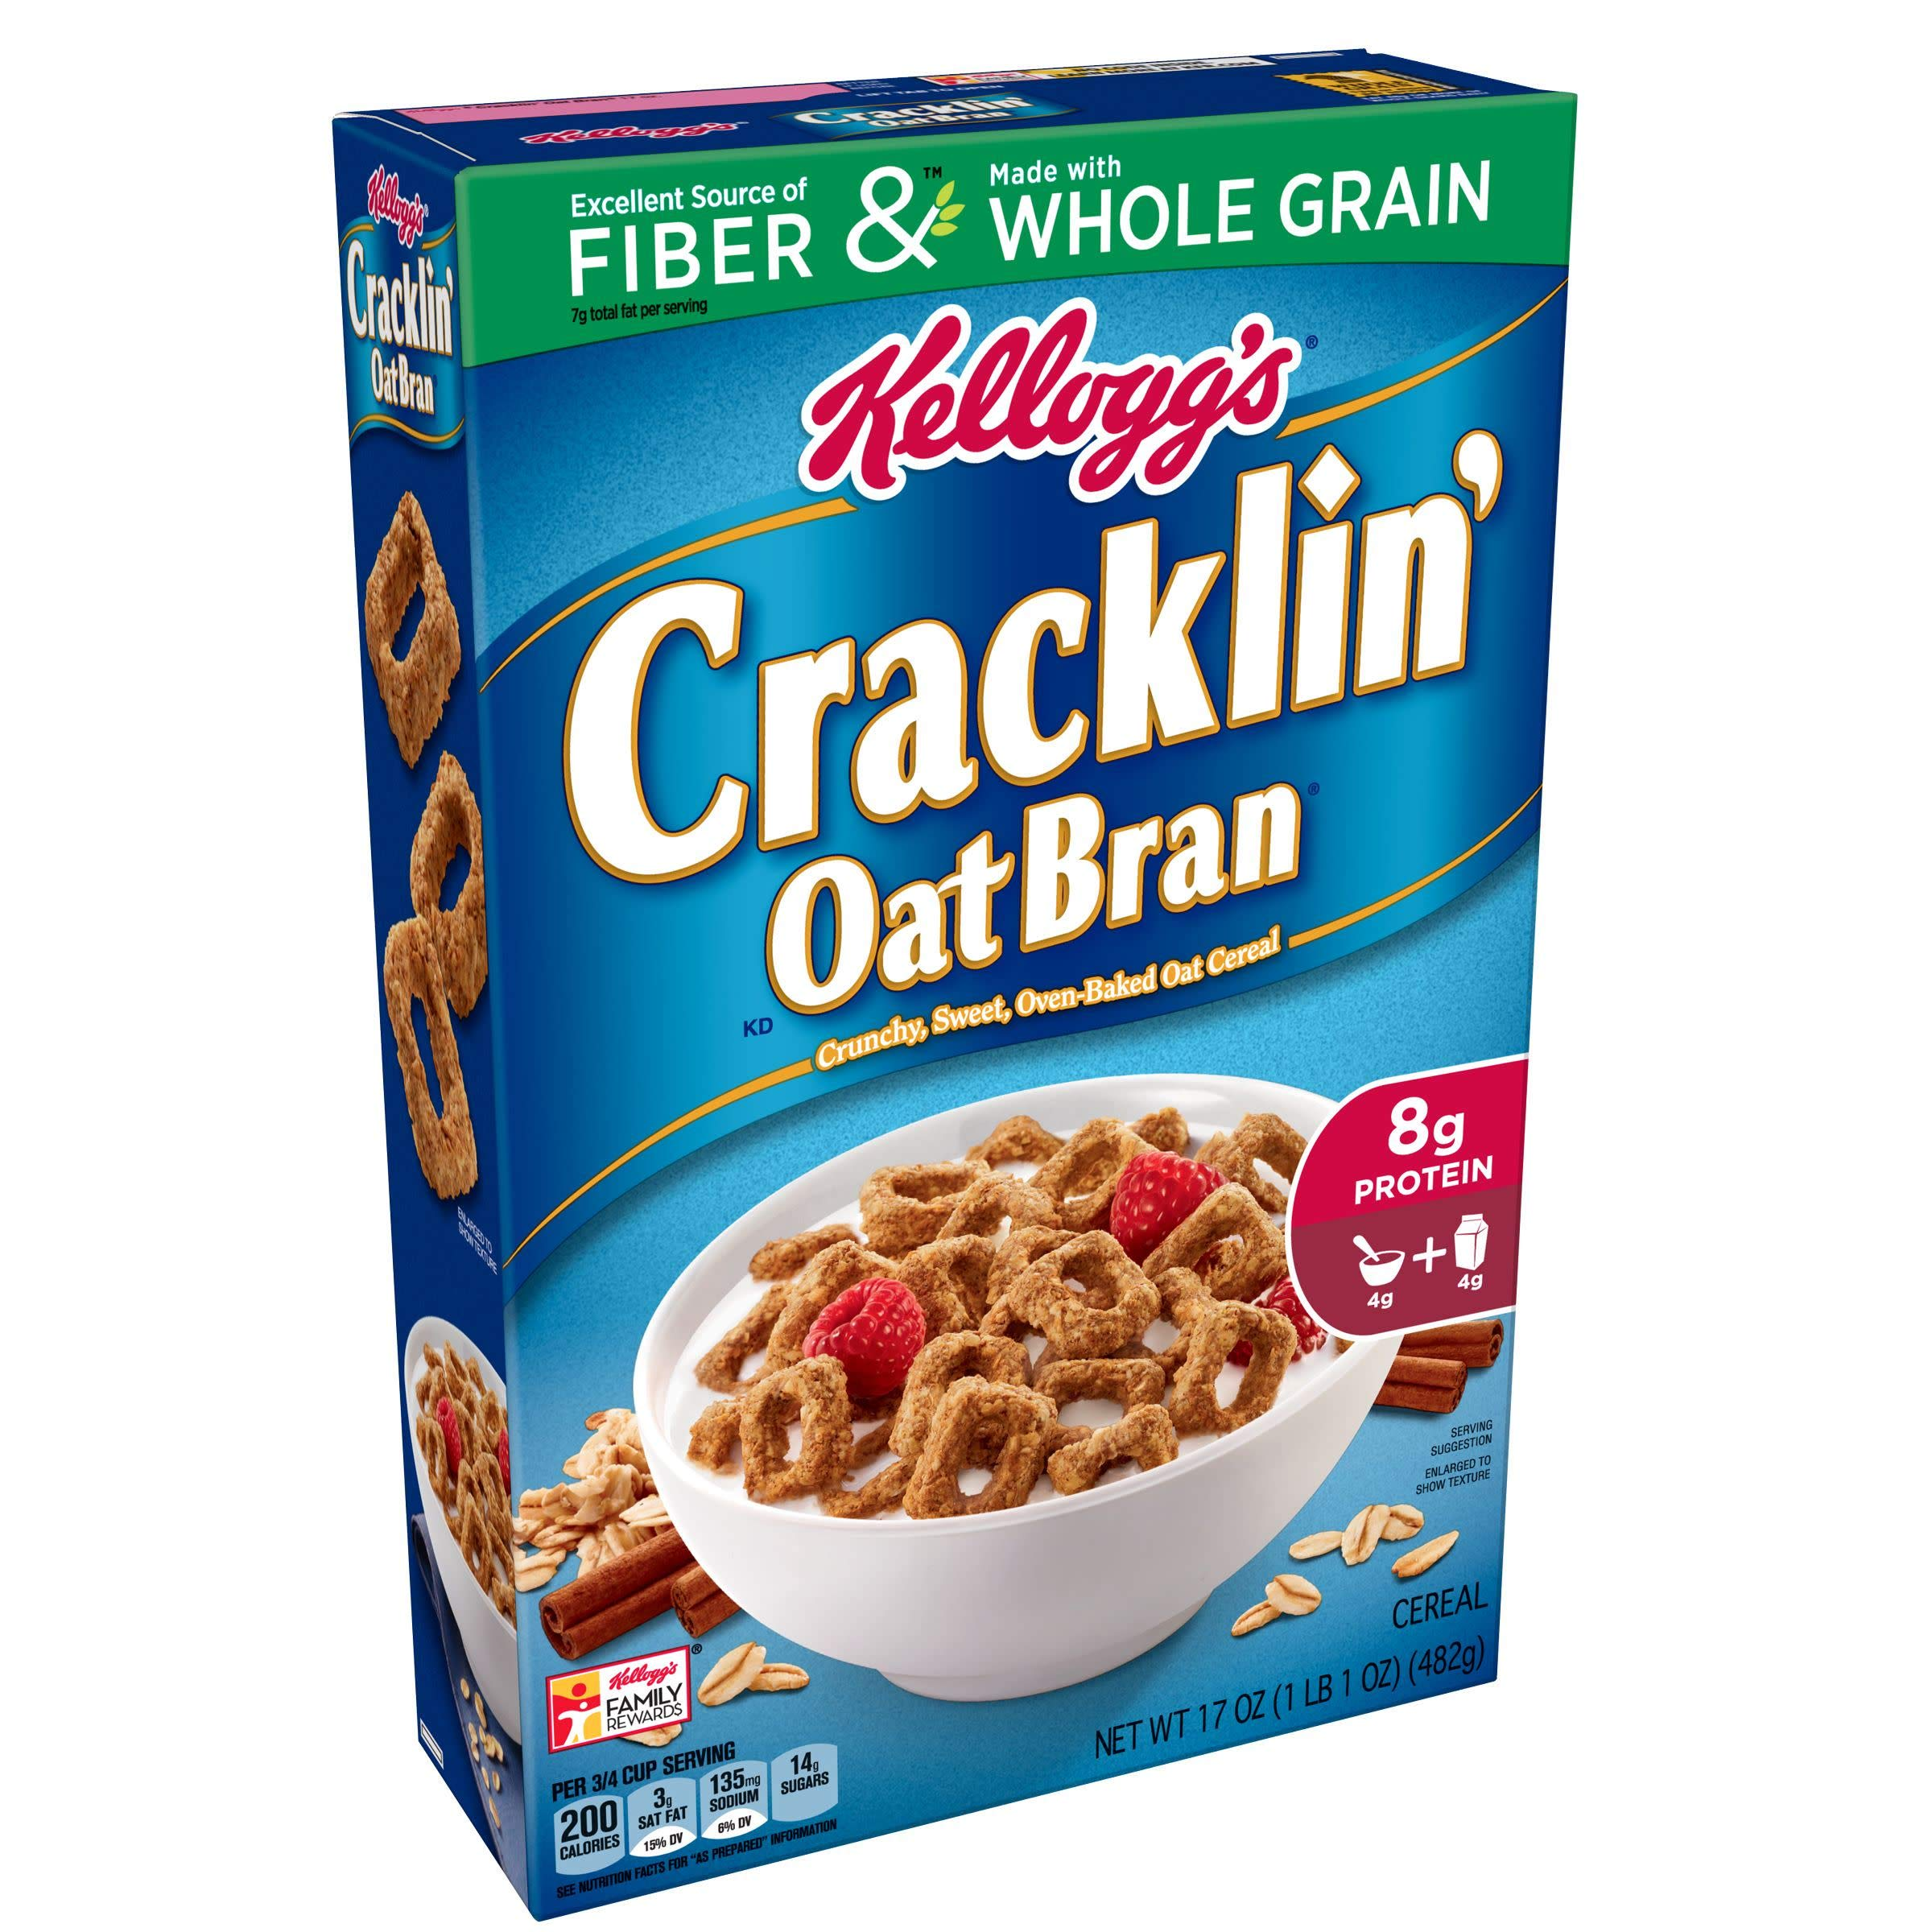 (Discontinued Version) Discontinued by Manufacturer)Kellogg's Breakfast Cereal, Cracklin' Oat Bran, Excellent Source of Fiber, Made with Whole Grain, 17 oz Box(Pack of 10) by Cracklin' Oat Bran